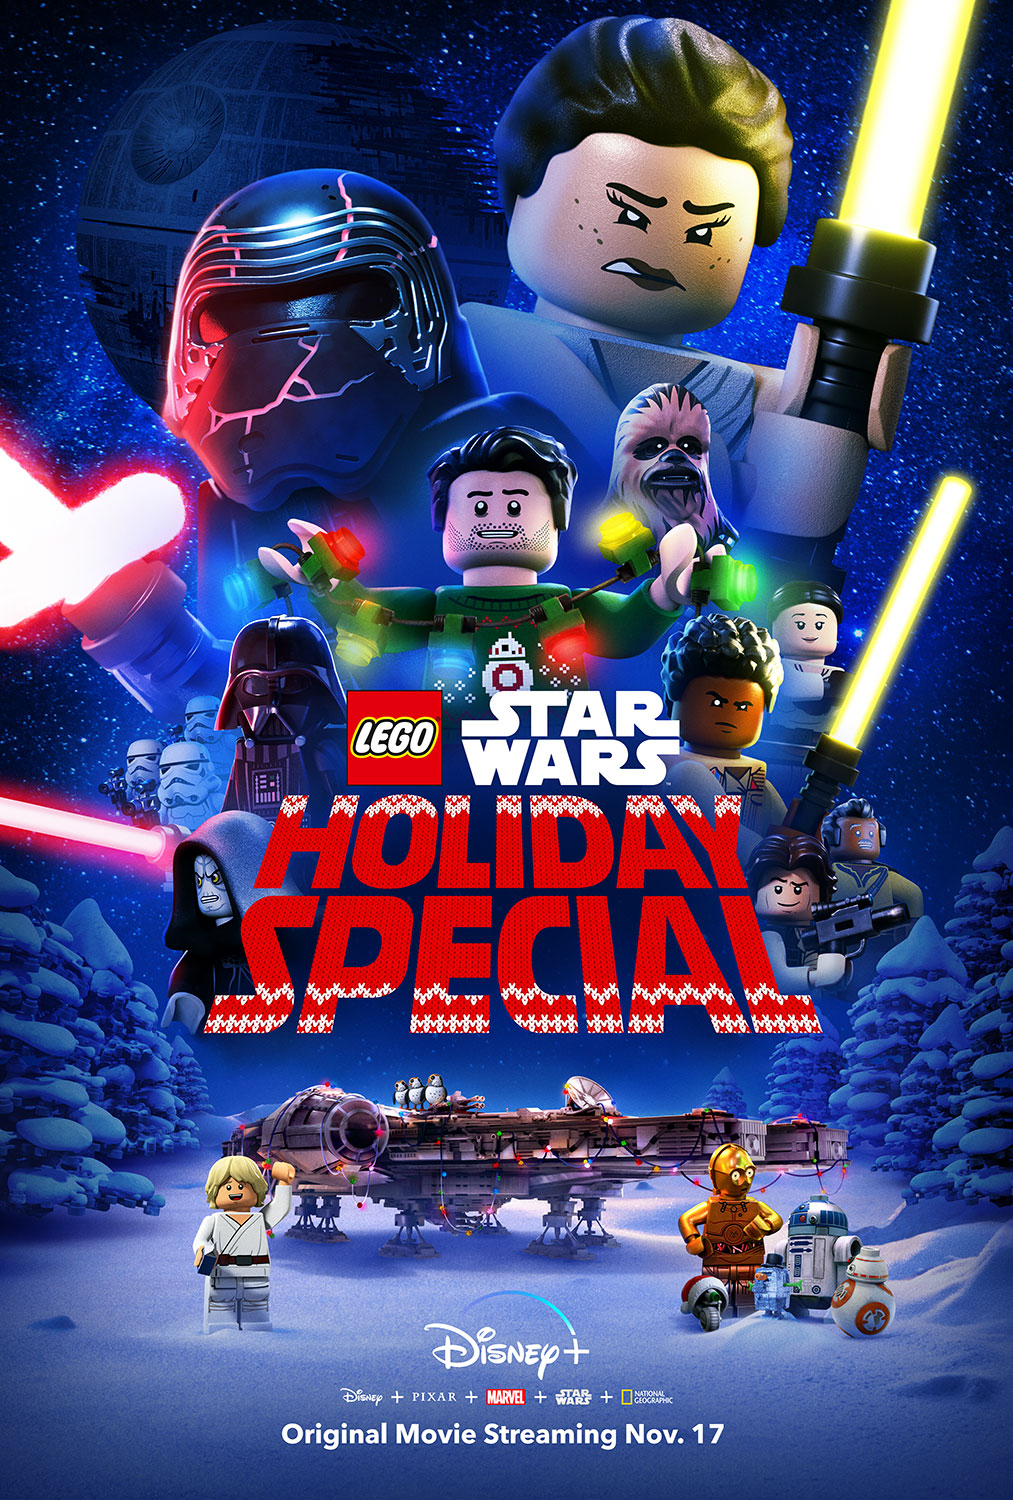 The Lego Star Wars Holiday Special | Key Art Finishing & Illustration